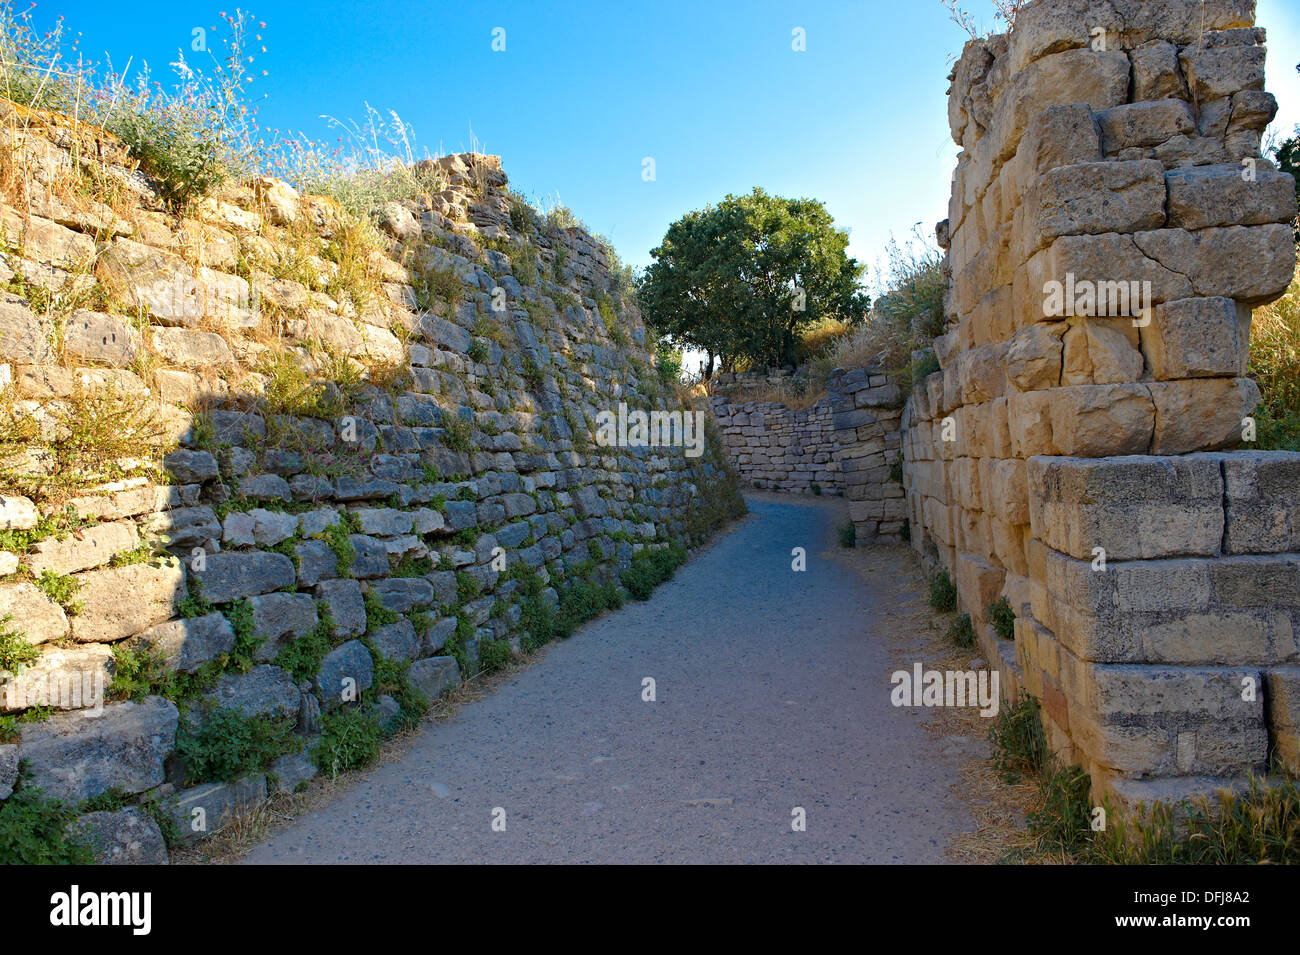 Portion of the walls & entrance gate of Troy (VII), identified as the site of the Trojan War (ca. 1200 BC). - Stock Image